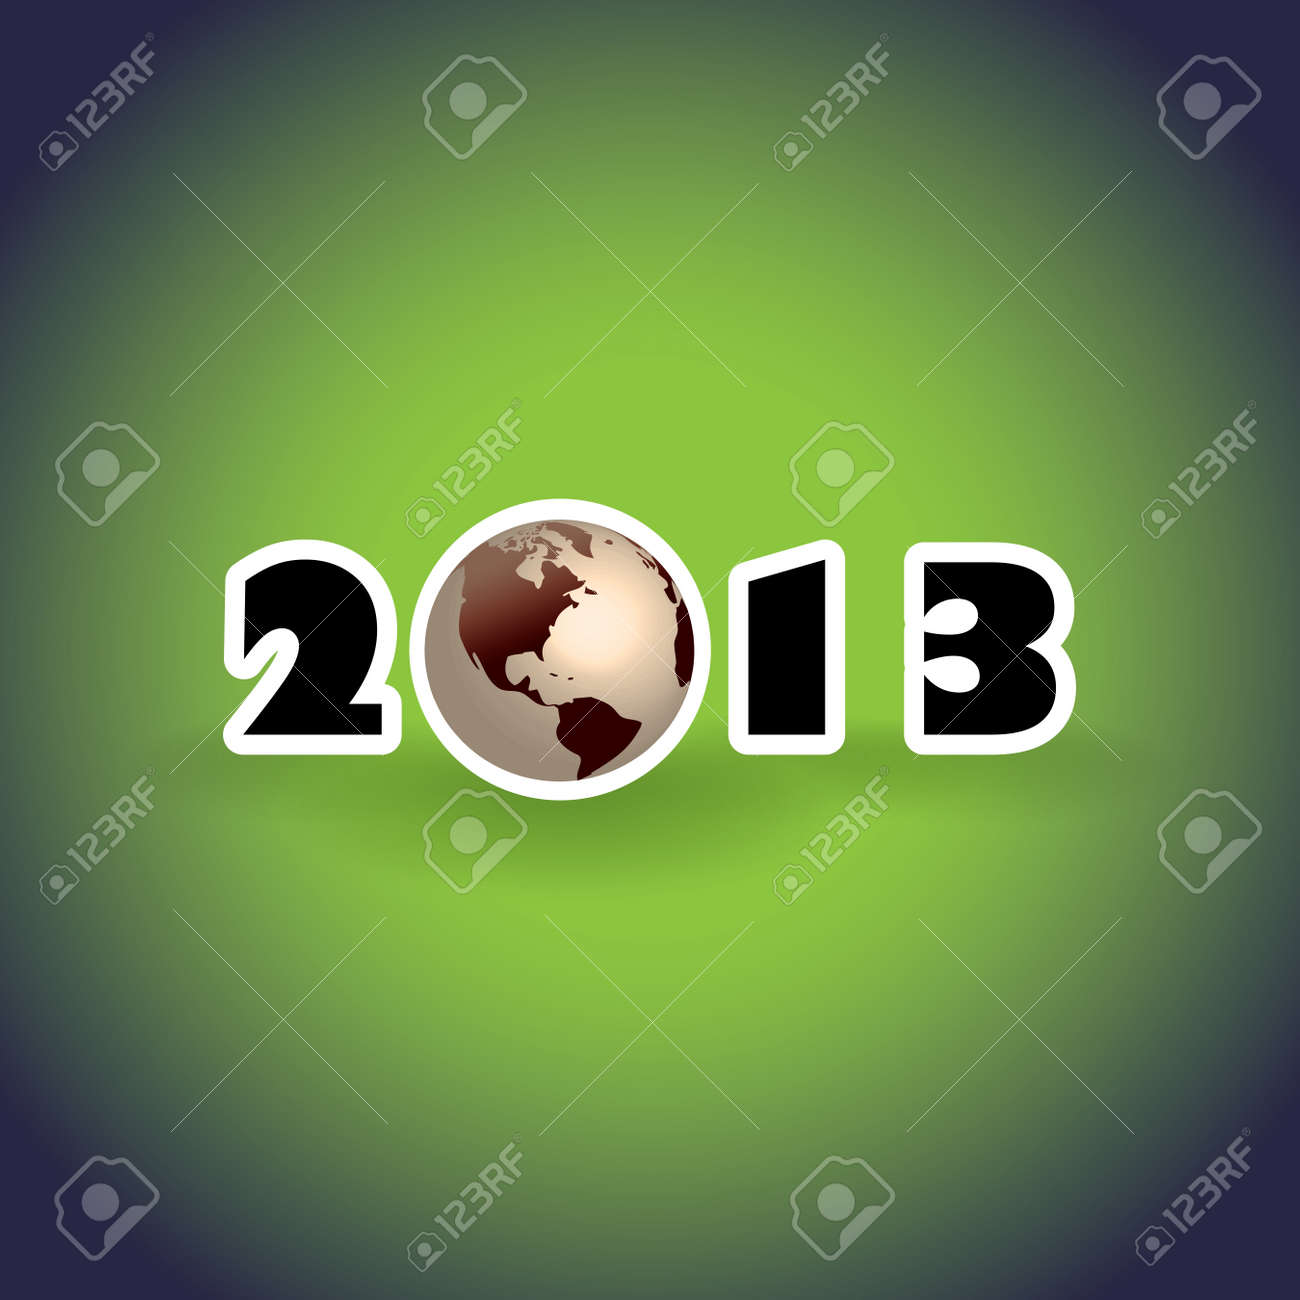 2013 concept with planet Earth, illustration Stock Vector - 16262109